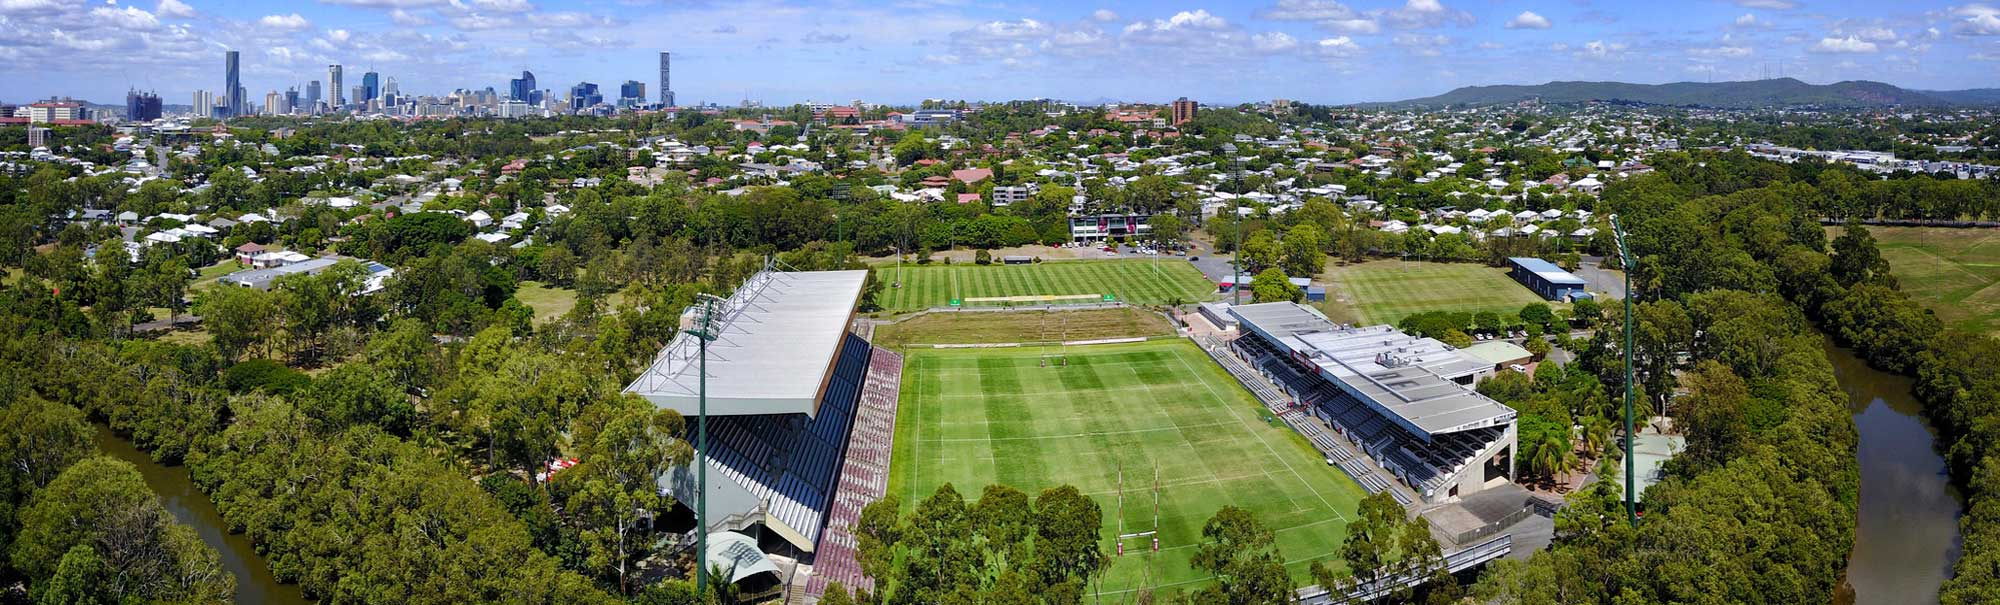 Aerial Drone Photography of Ballymore Park with Brisbane in the background during the midday